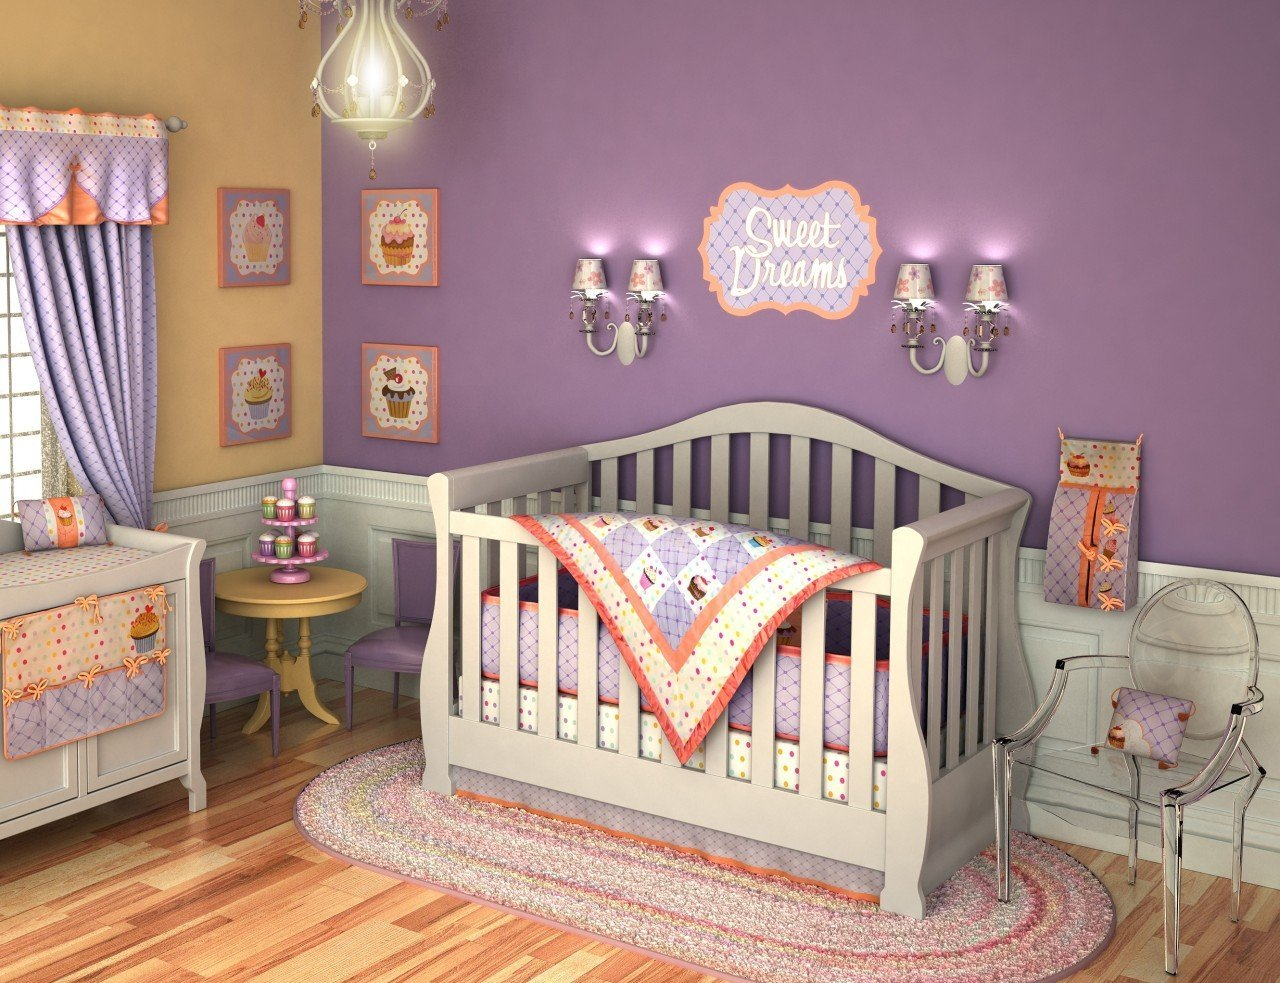 Girl Nursery Bedding 7959 Wallpapers Baby HD Wallpaper and 1280x983